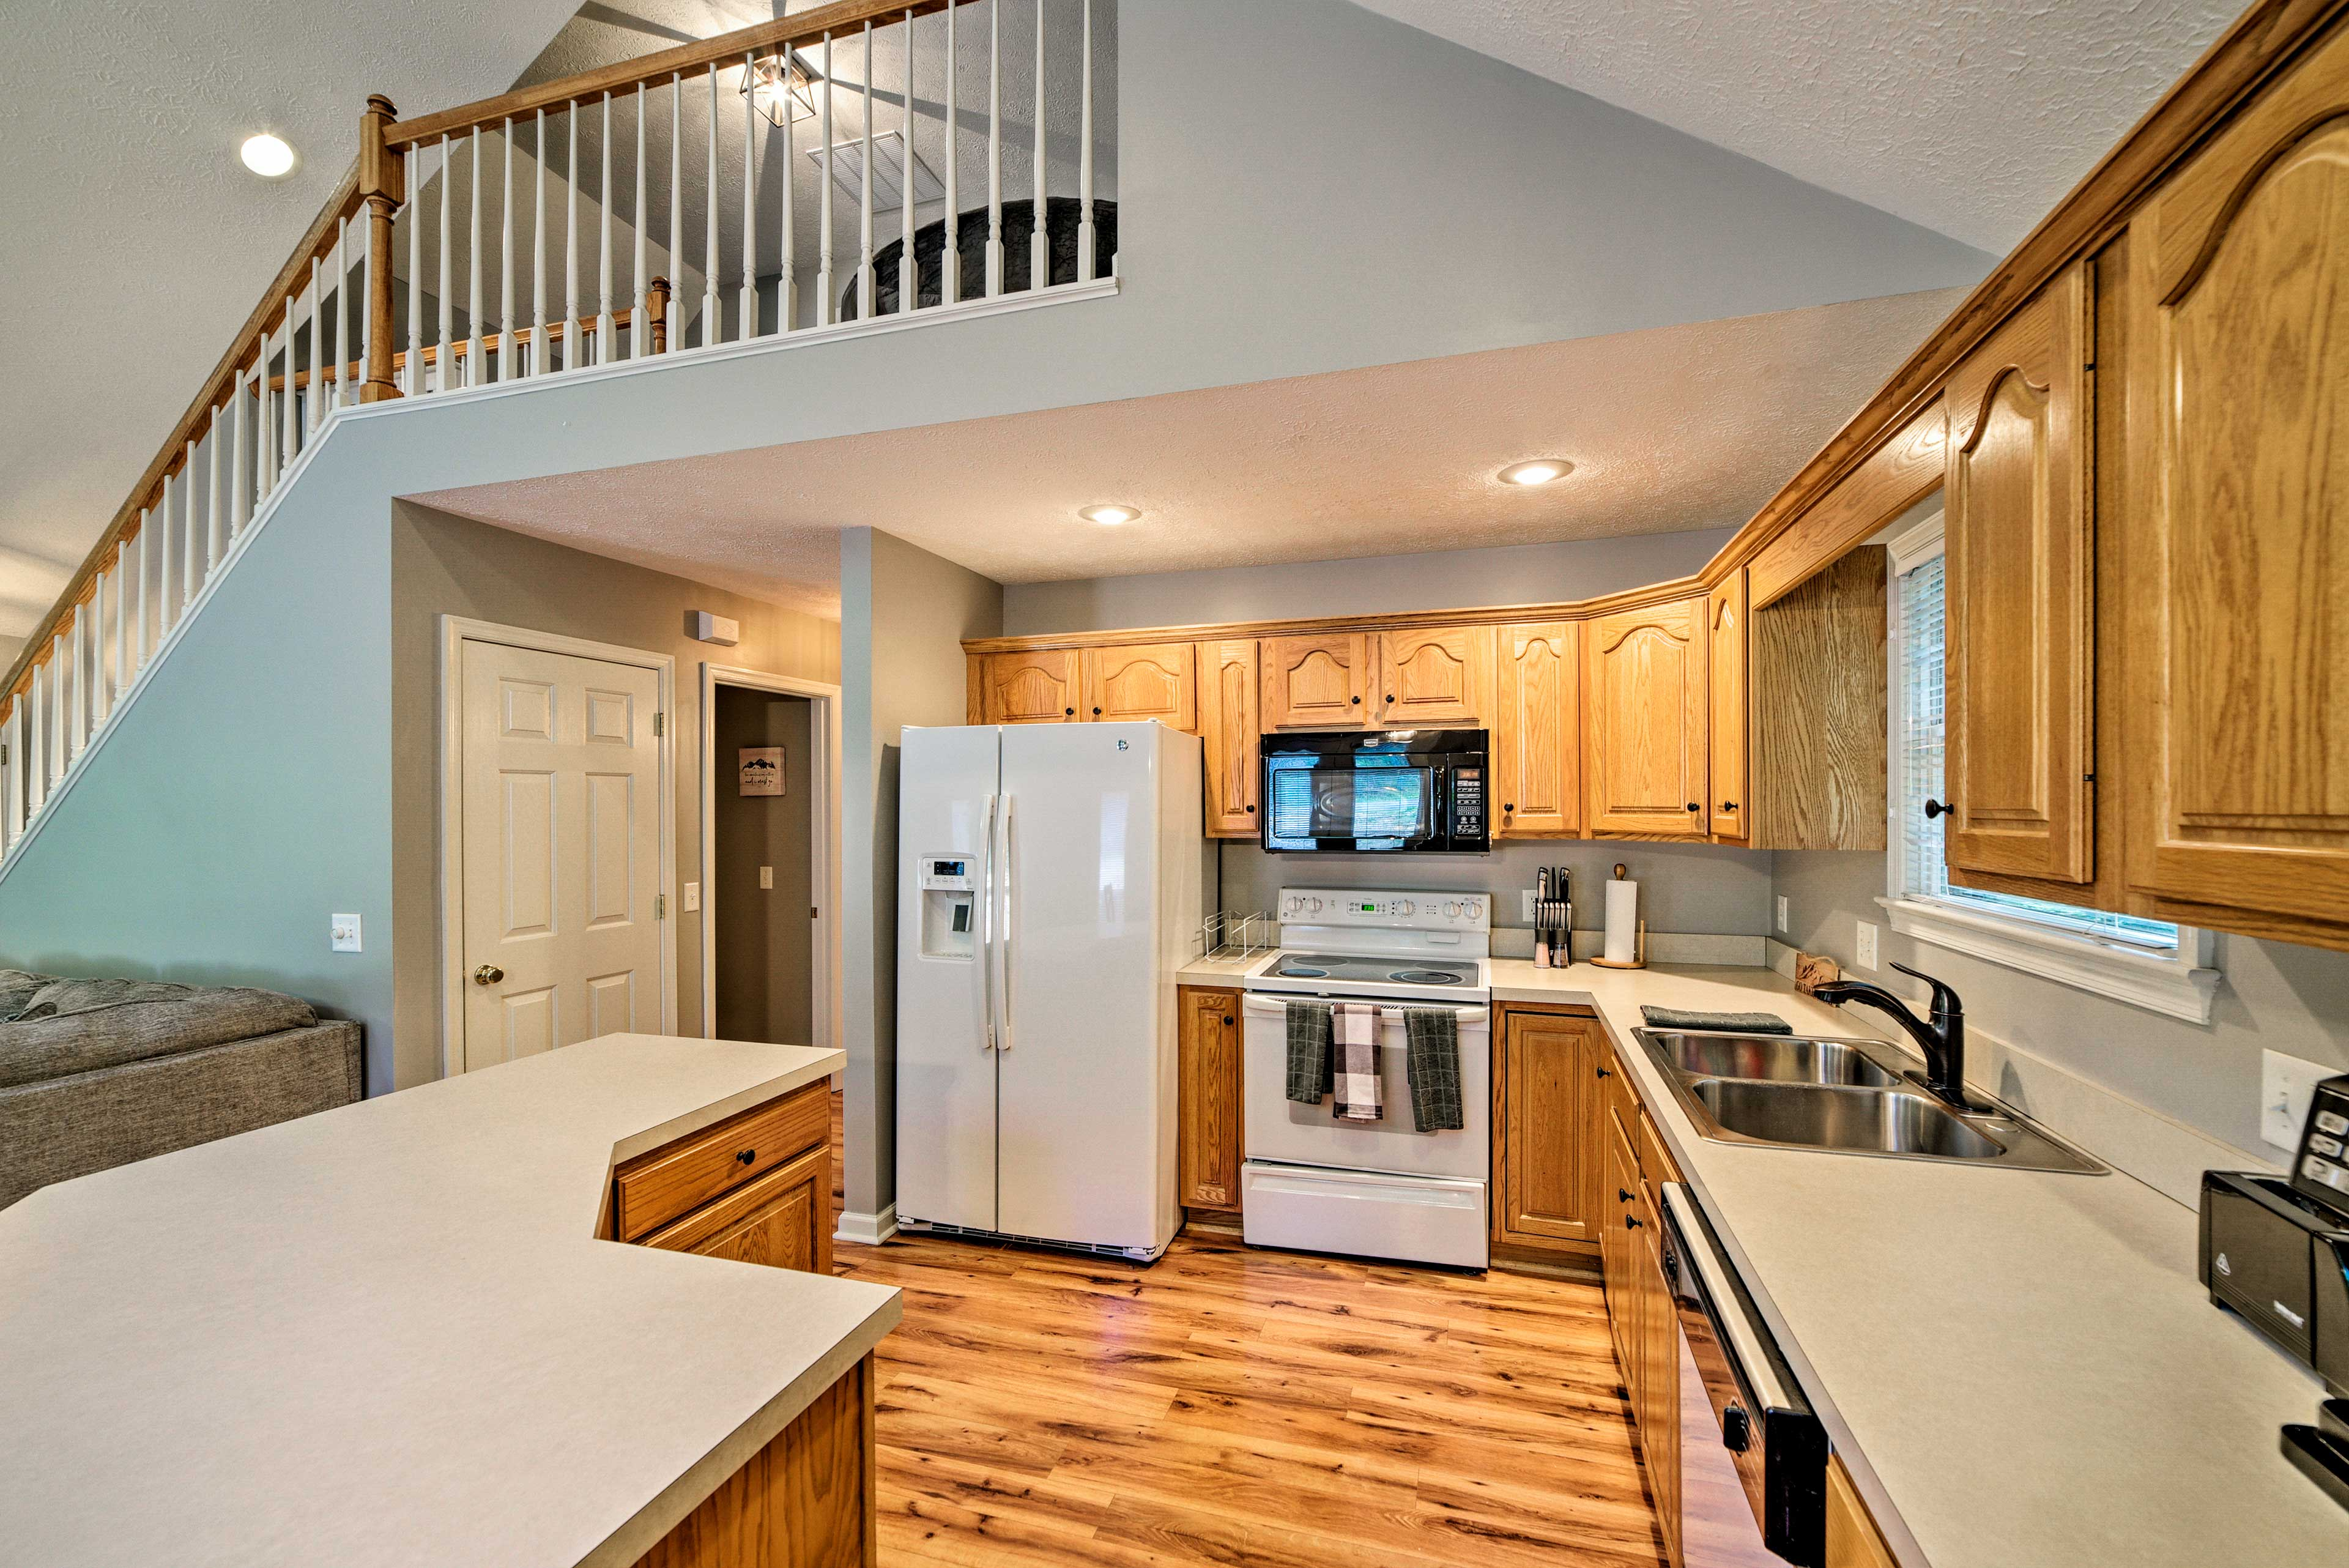 Prepare your family's favorite meals in the fully equipped kitchen.